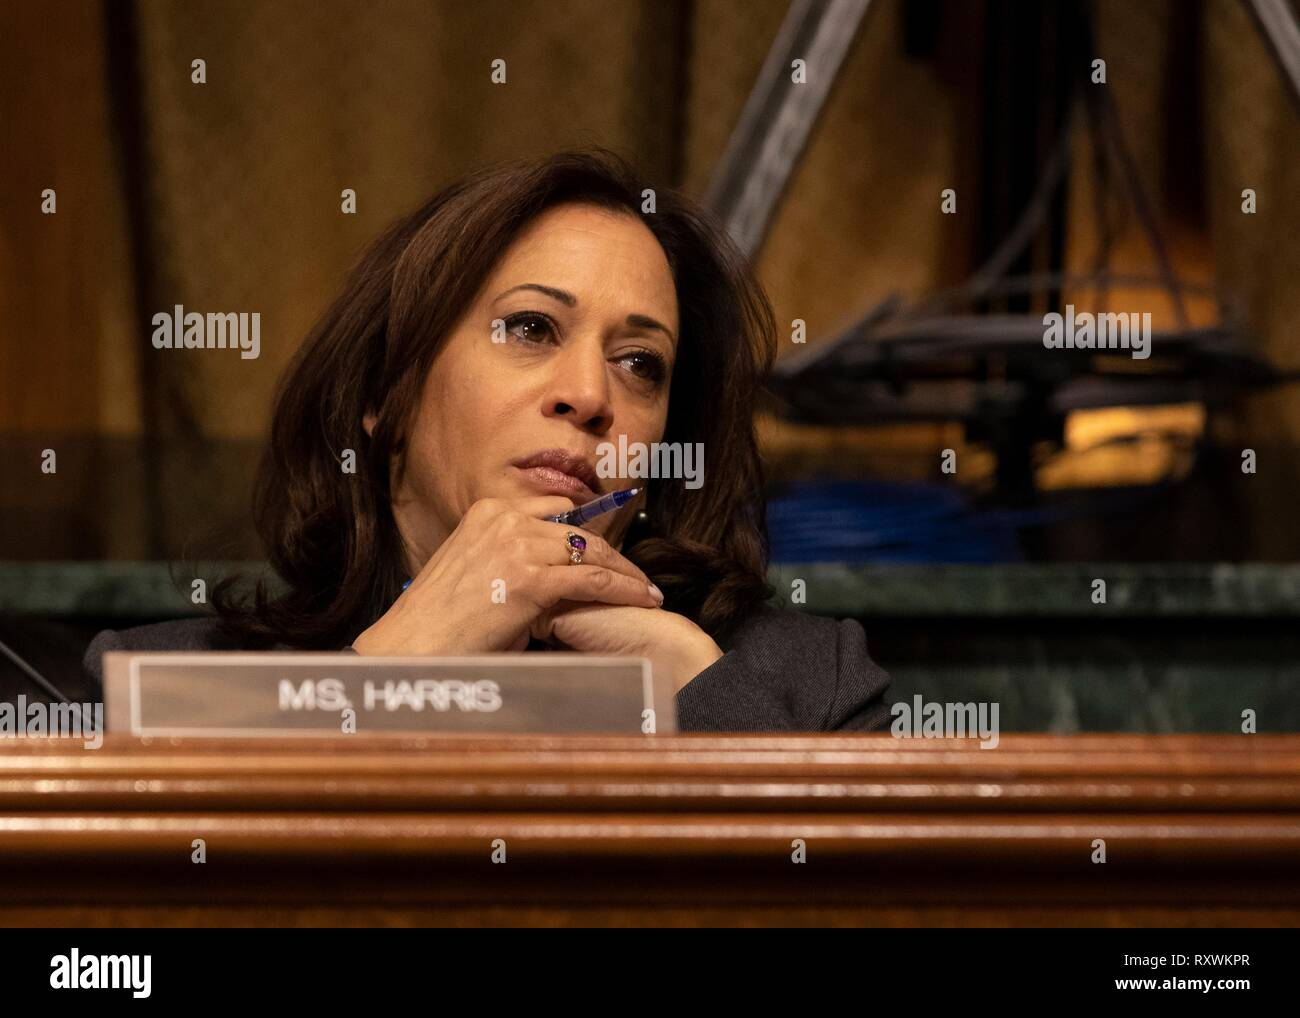 U.S. Senator Kamala Harris of California, questions Customs and Border Protection Commissioner Kevin McAleenan during a hearing at the Senate Judiciary Committee on Capitol Hill March 5, 2019 in Washington, D.C. The hearing was on the Oversight of Customs and Border Protection Response to the Smuggling of Persons at the Southern Border. Stock Photo